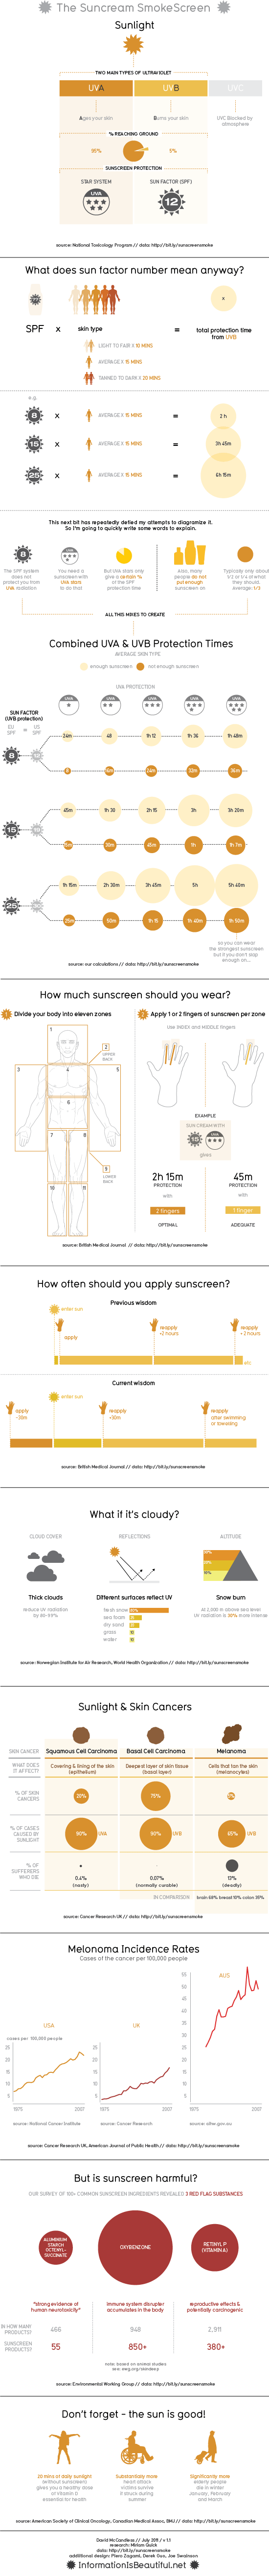 What You Need to Know About Sunscreen In One Infographic